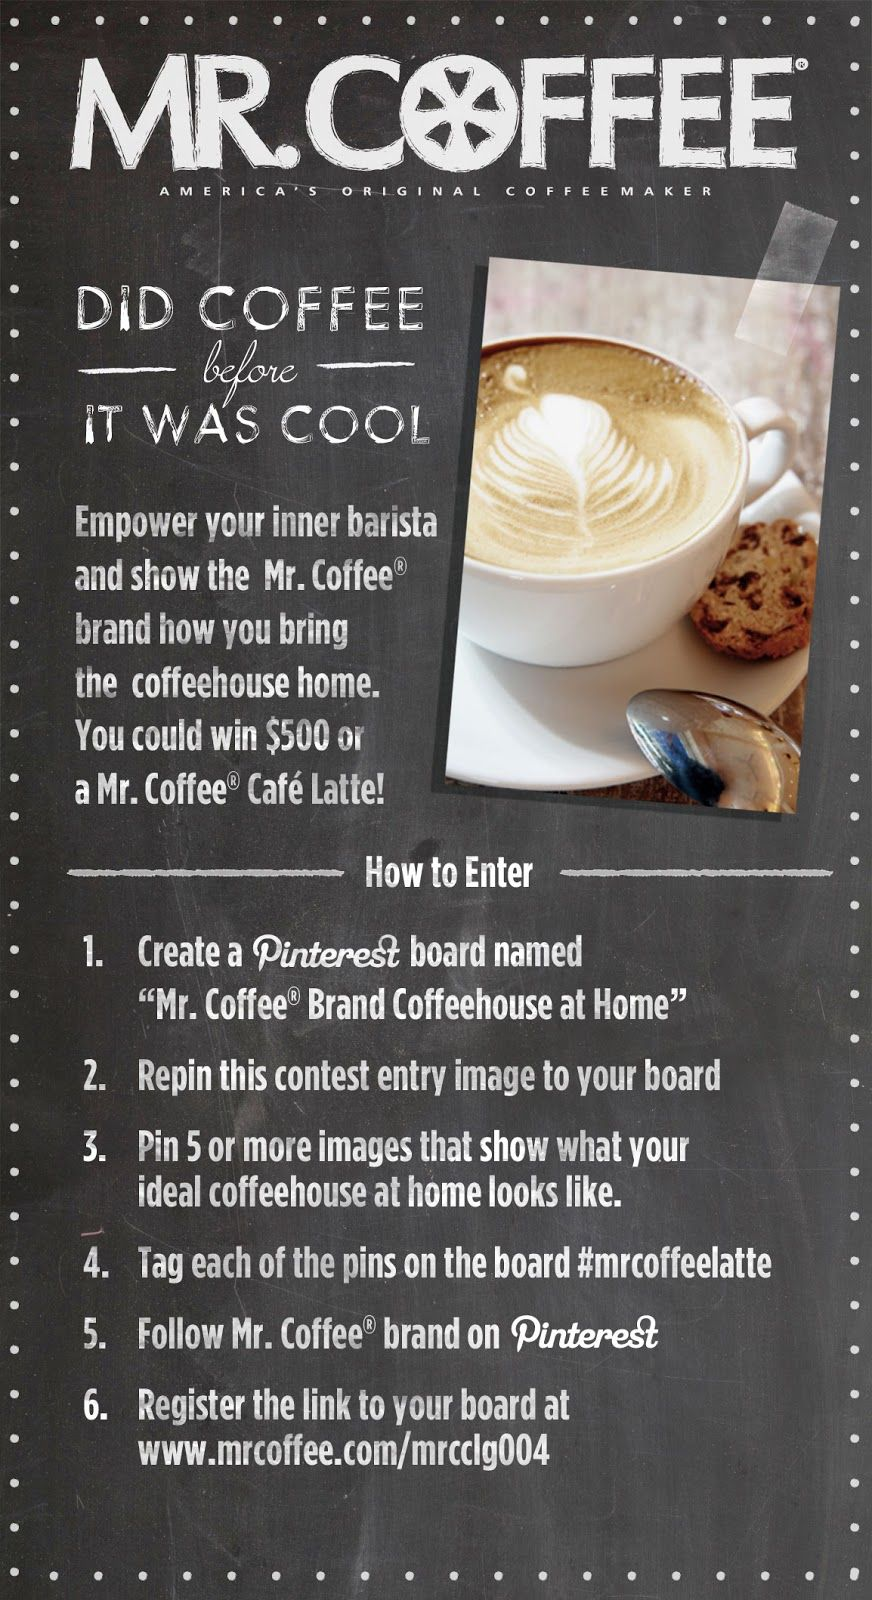 Win the grand prize of 500 or one of two Mr. Coffee® Café